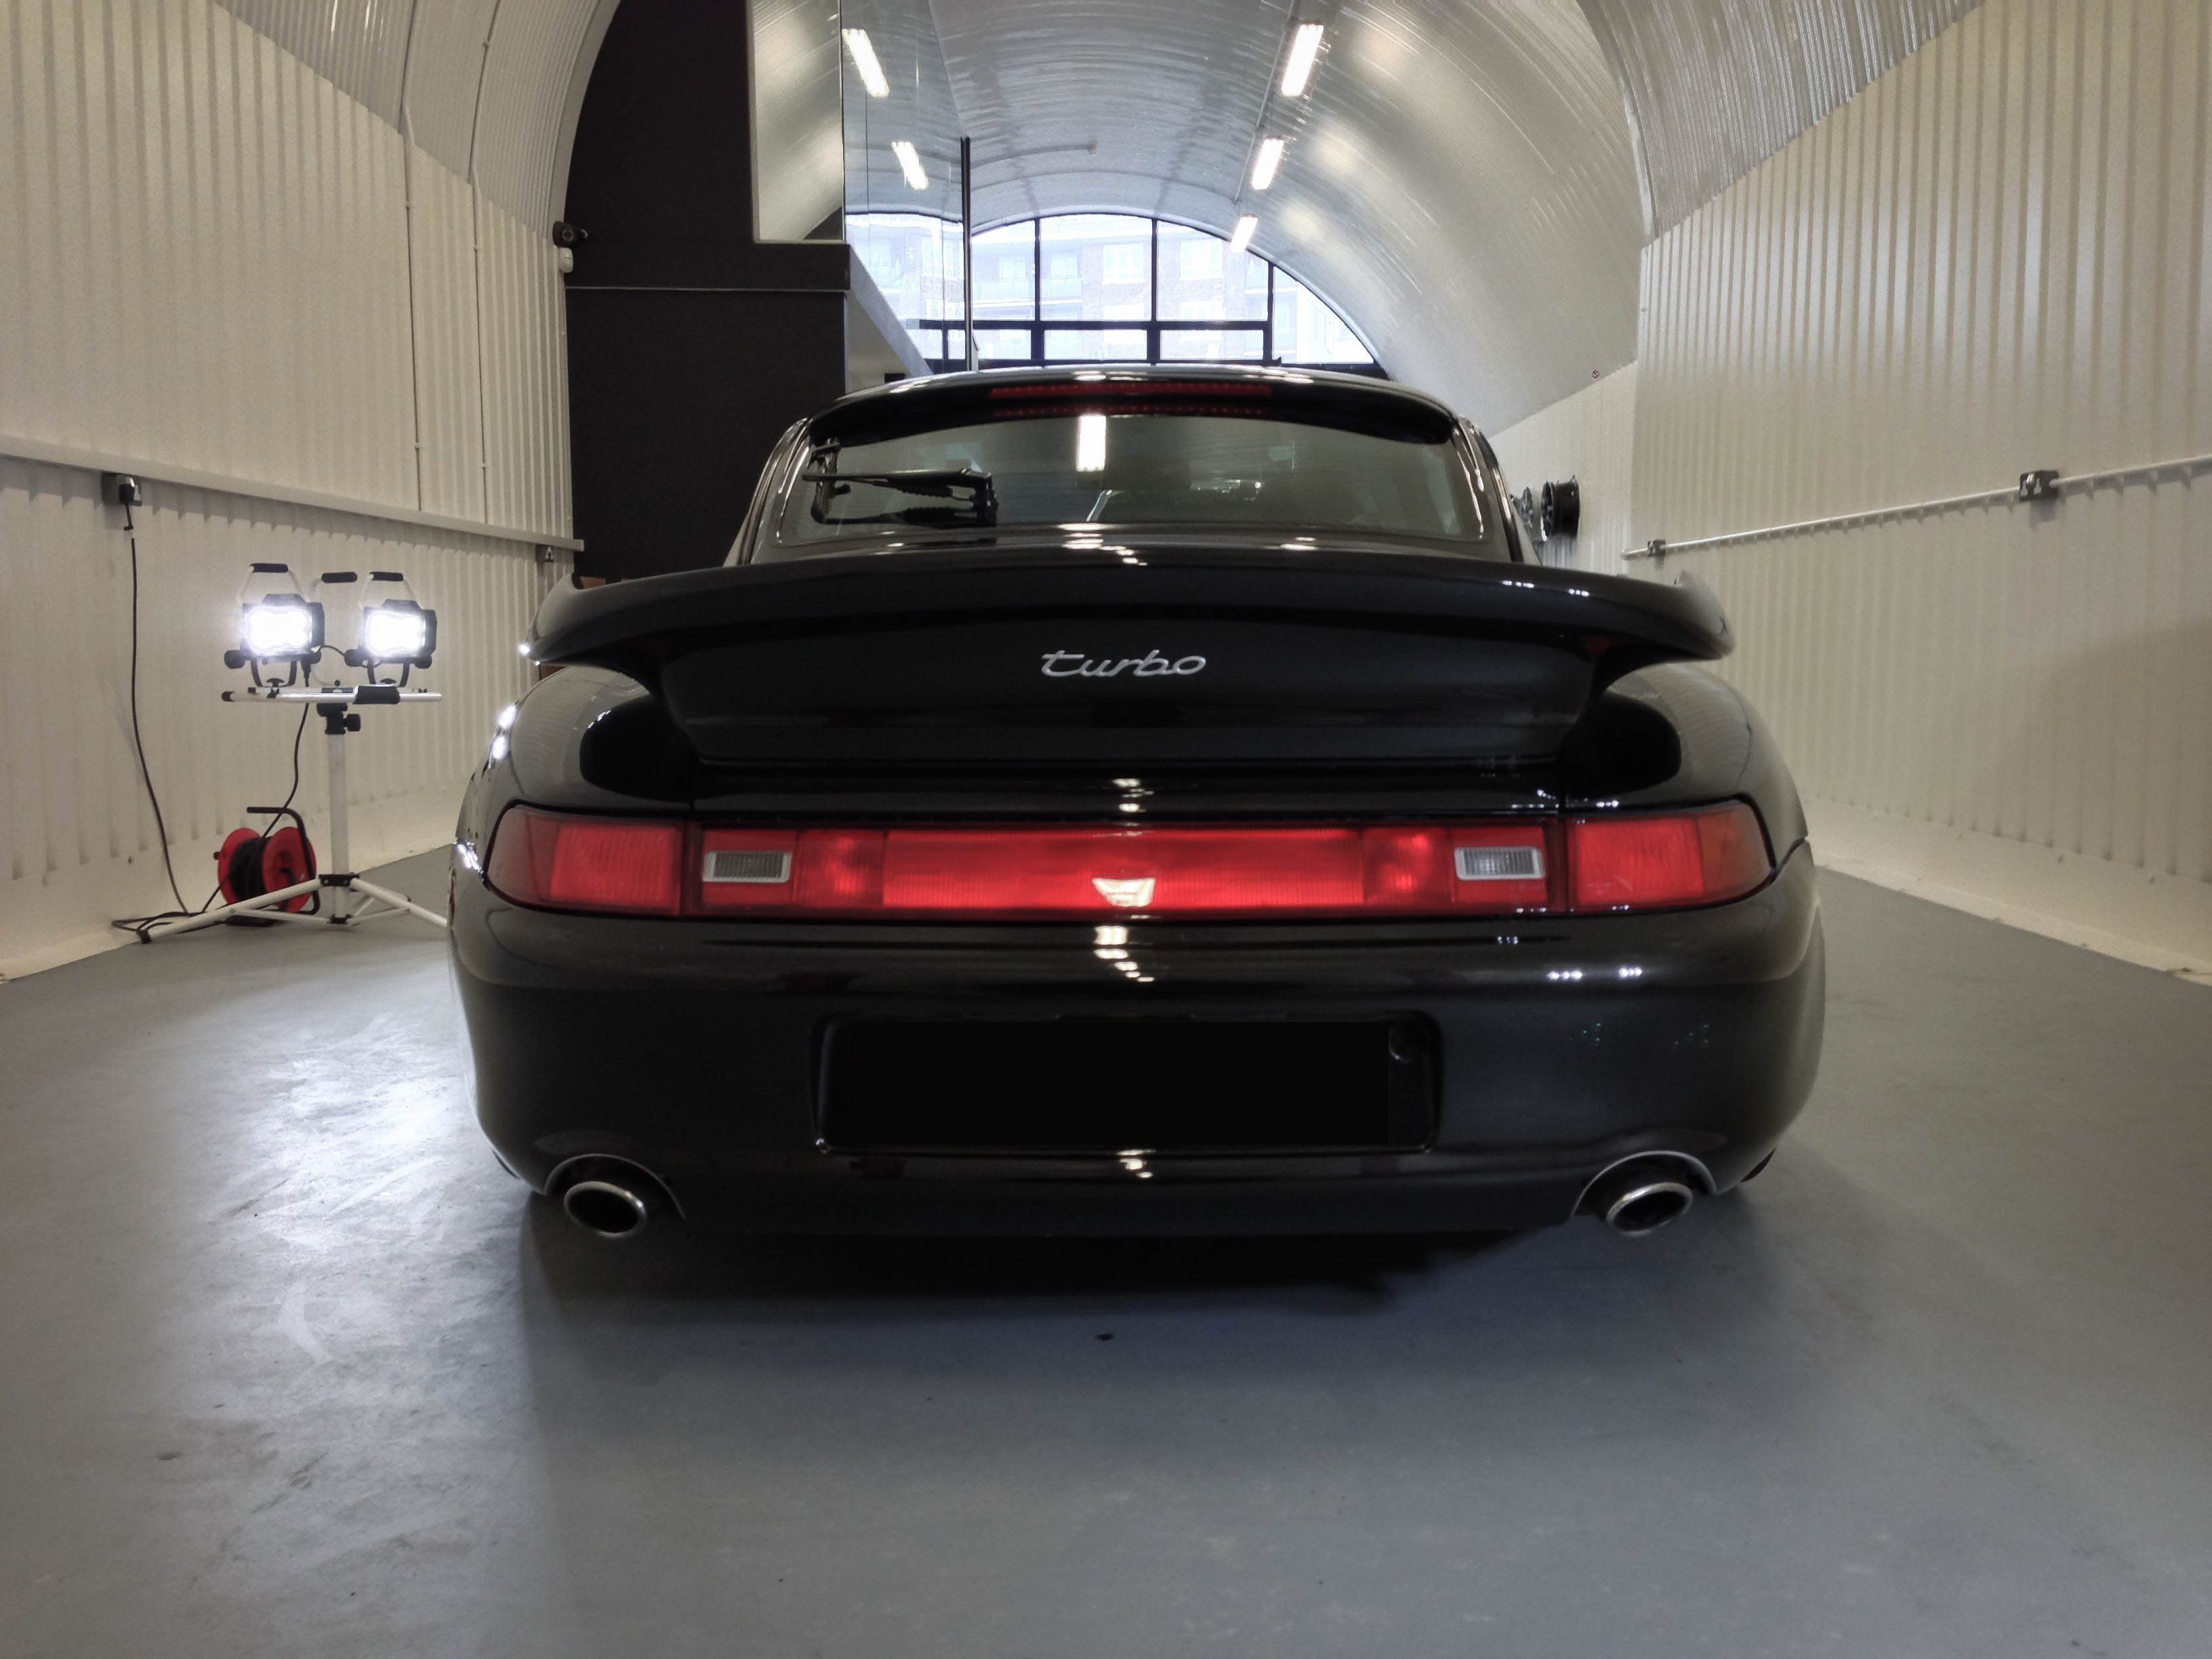 Porsche 911 Turbo – Back end